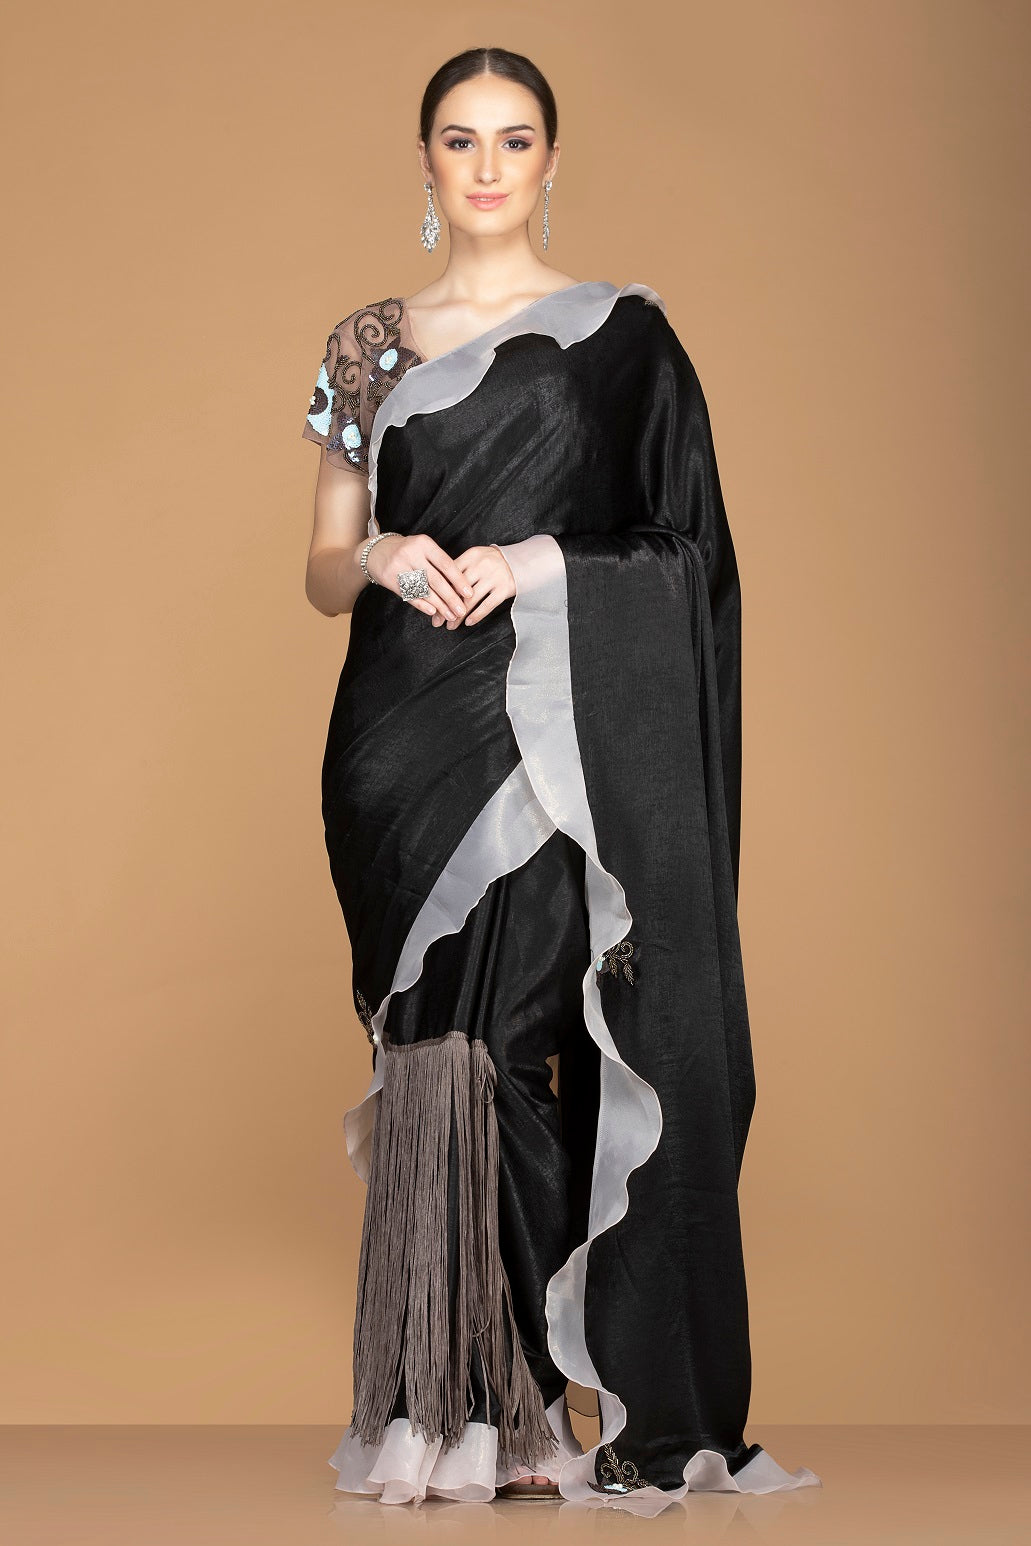 Shop black fringe saree online in USA and ruffle border and embroidered saree blouse. Elevate your sartorial choice with exclusive Indian designer sarees with blouse, embroidered sarees, party sarees from Pure Elegance Indian fashion store in USA.-full view